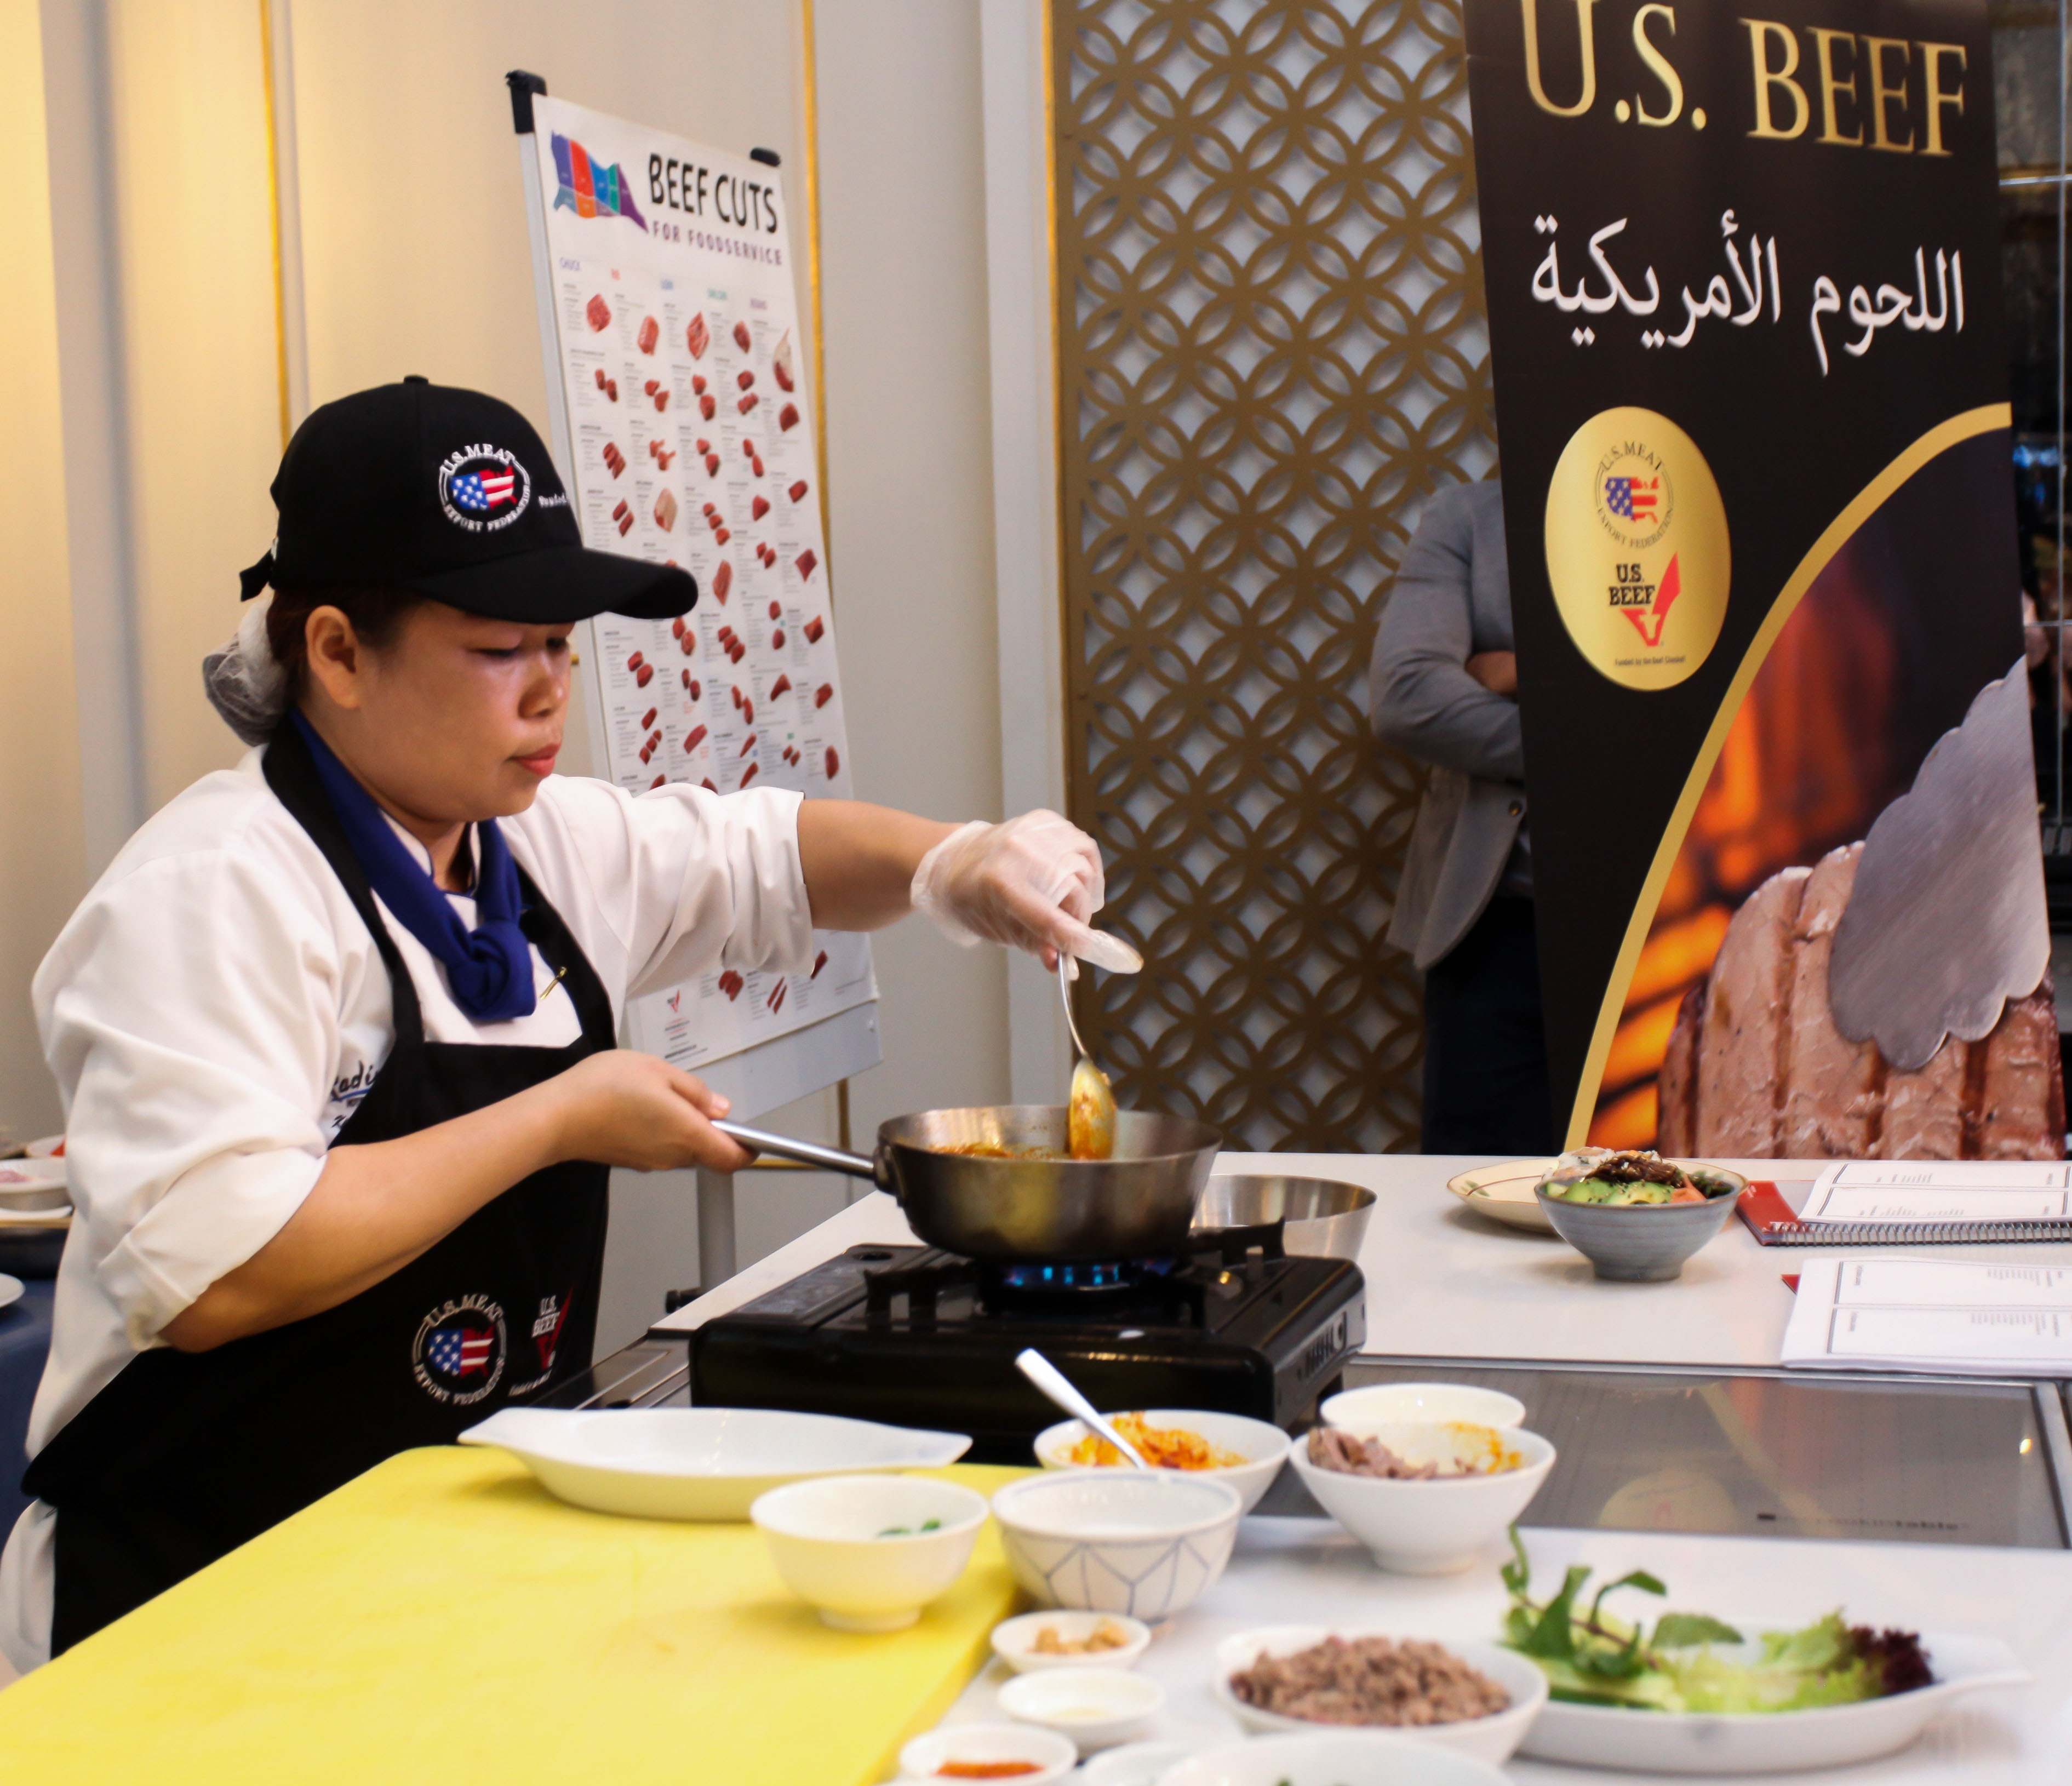 More than 90 chefs from the United Arab Emirates (UAE) were educated about U.S. beef during a training for the hotel, restaurant and institutional (HRI) sector